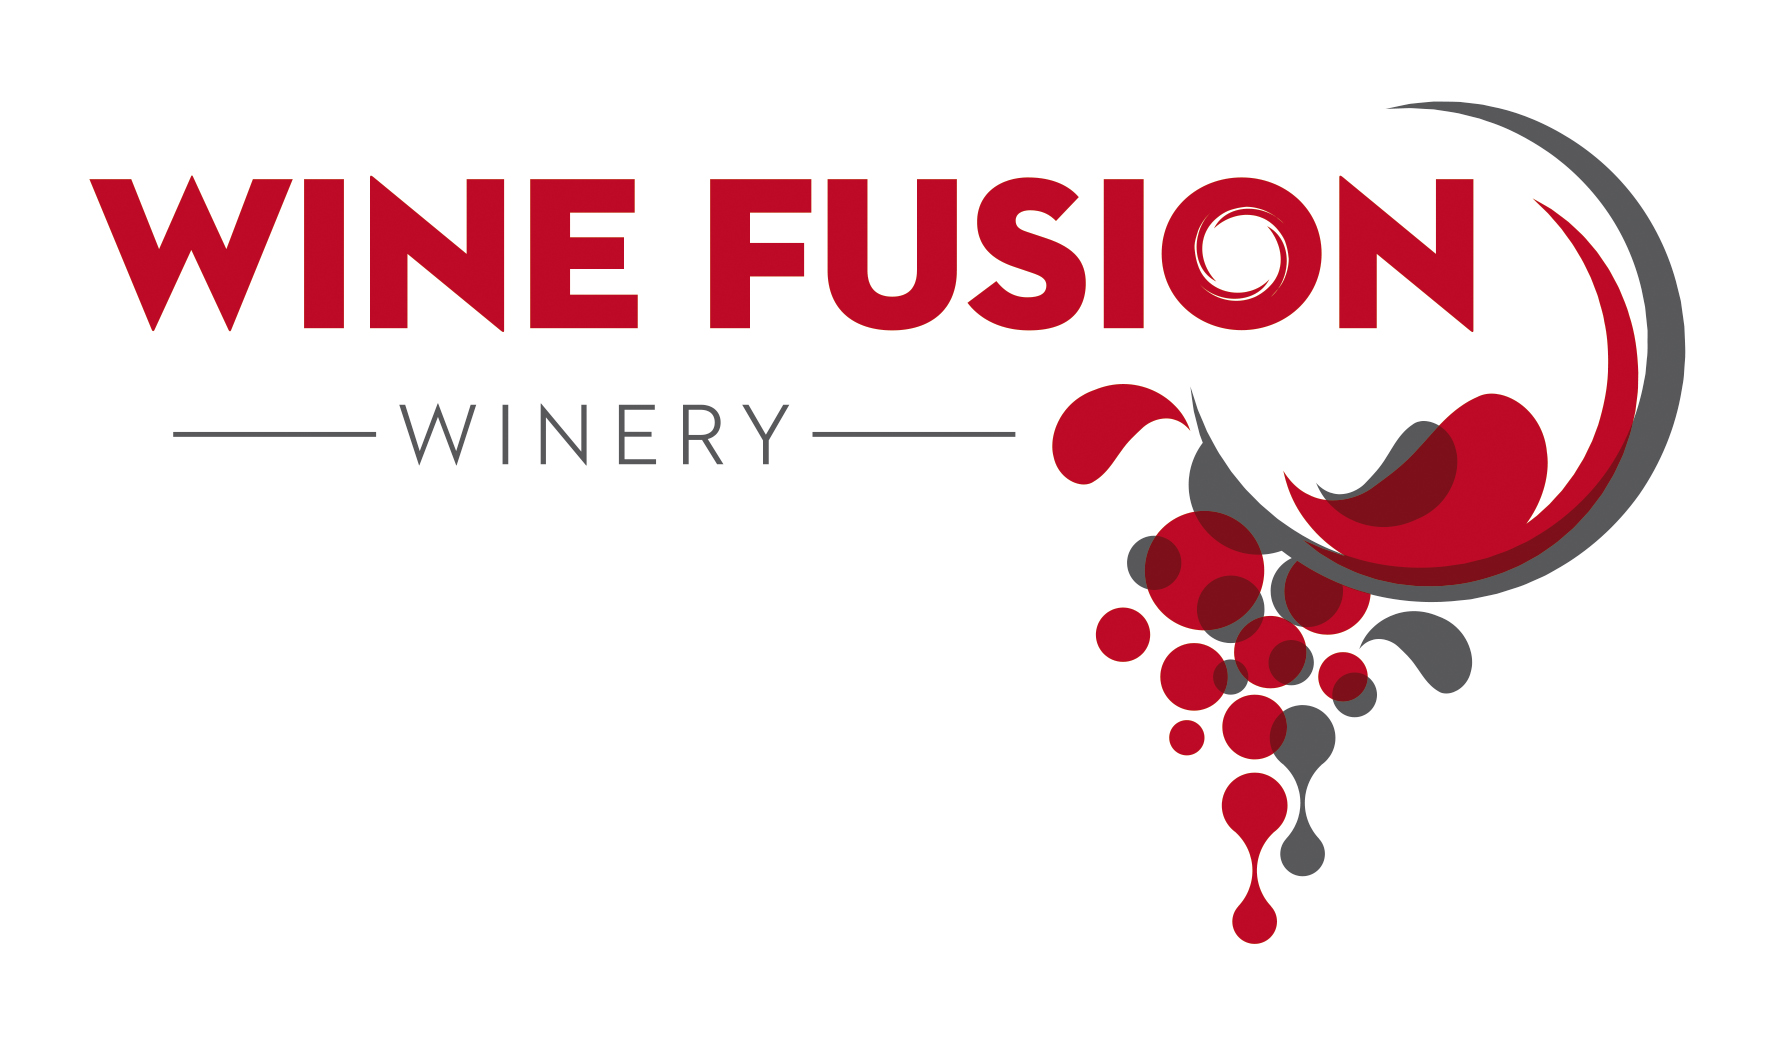 Tasting room specialist in grapevine tx united states wine fusion winery 1betcityfo Image collections